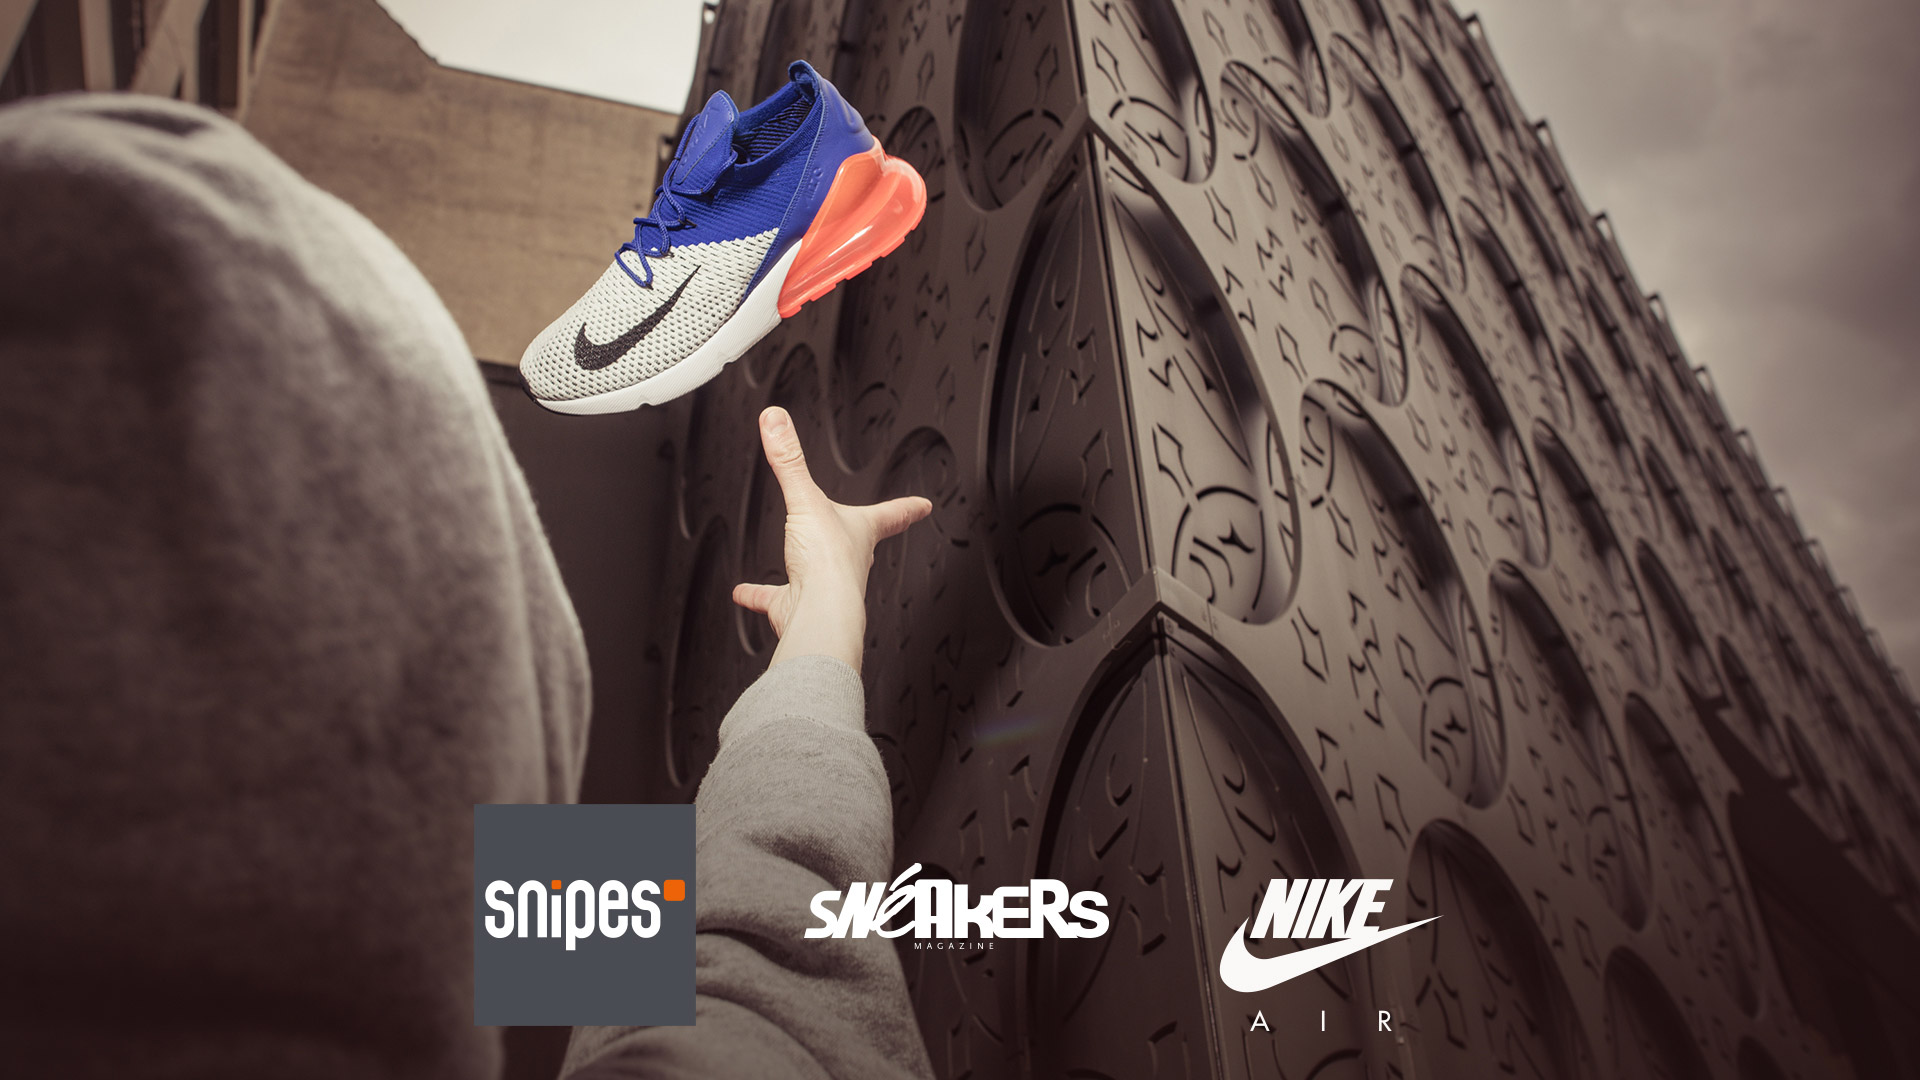 Snipes Shots in the Air - Sneaker Photography Contest Workshop (Slider)